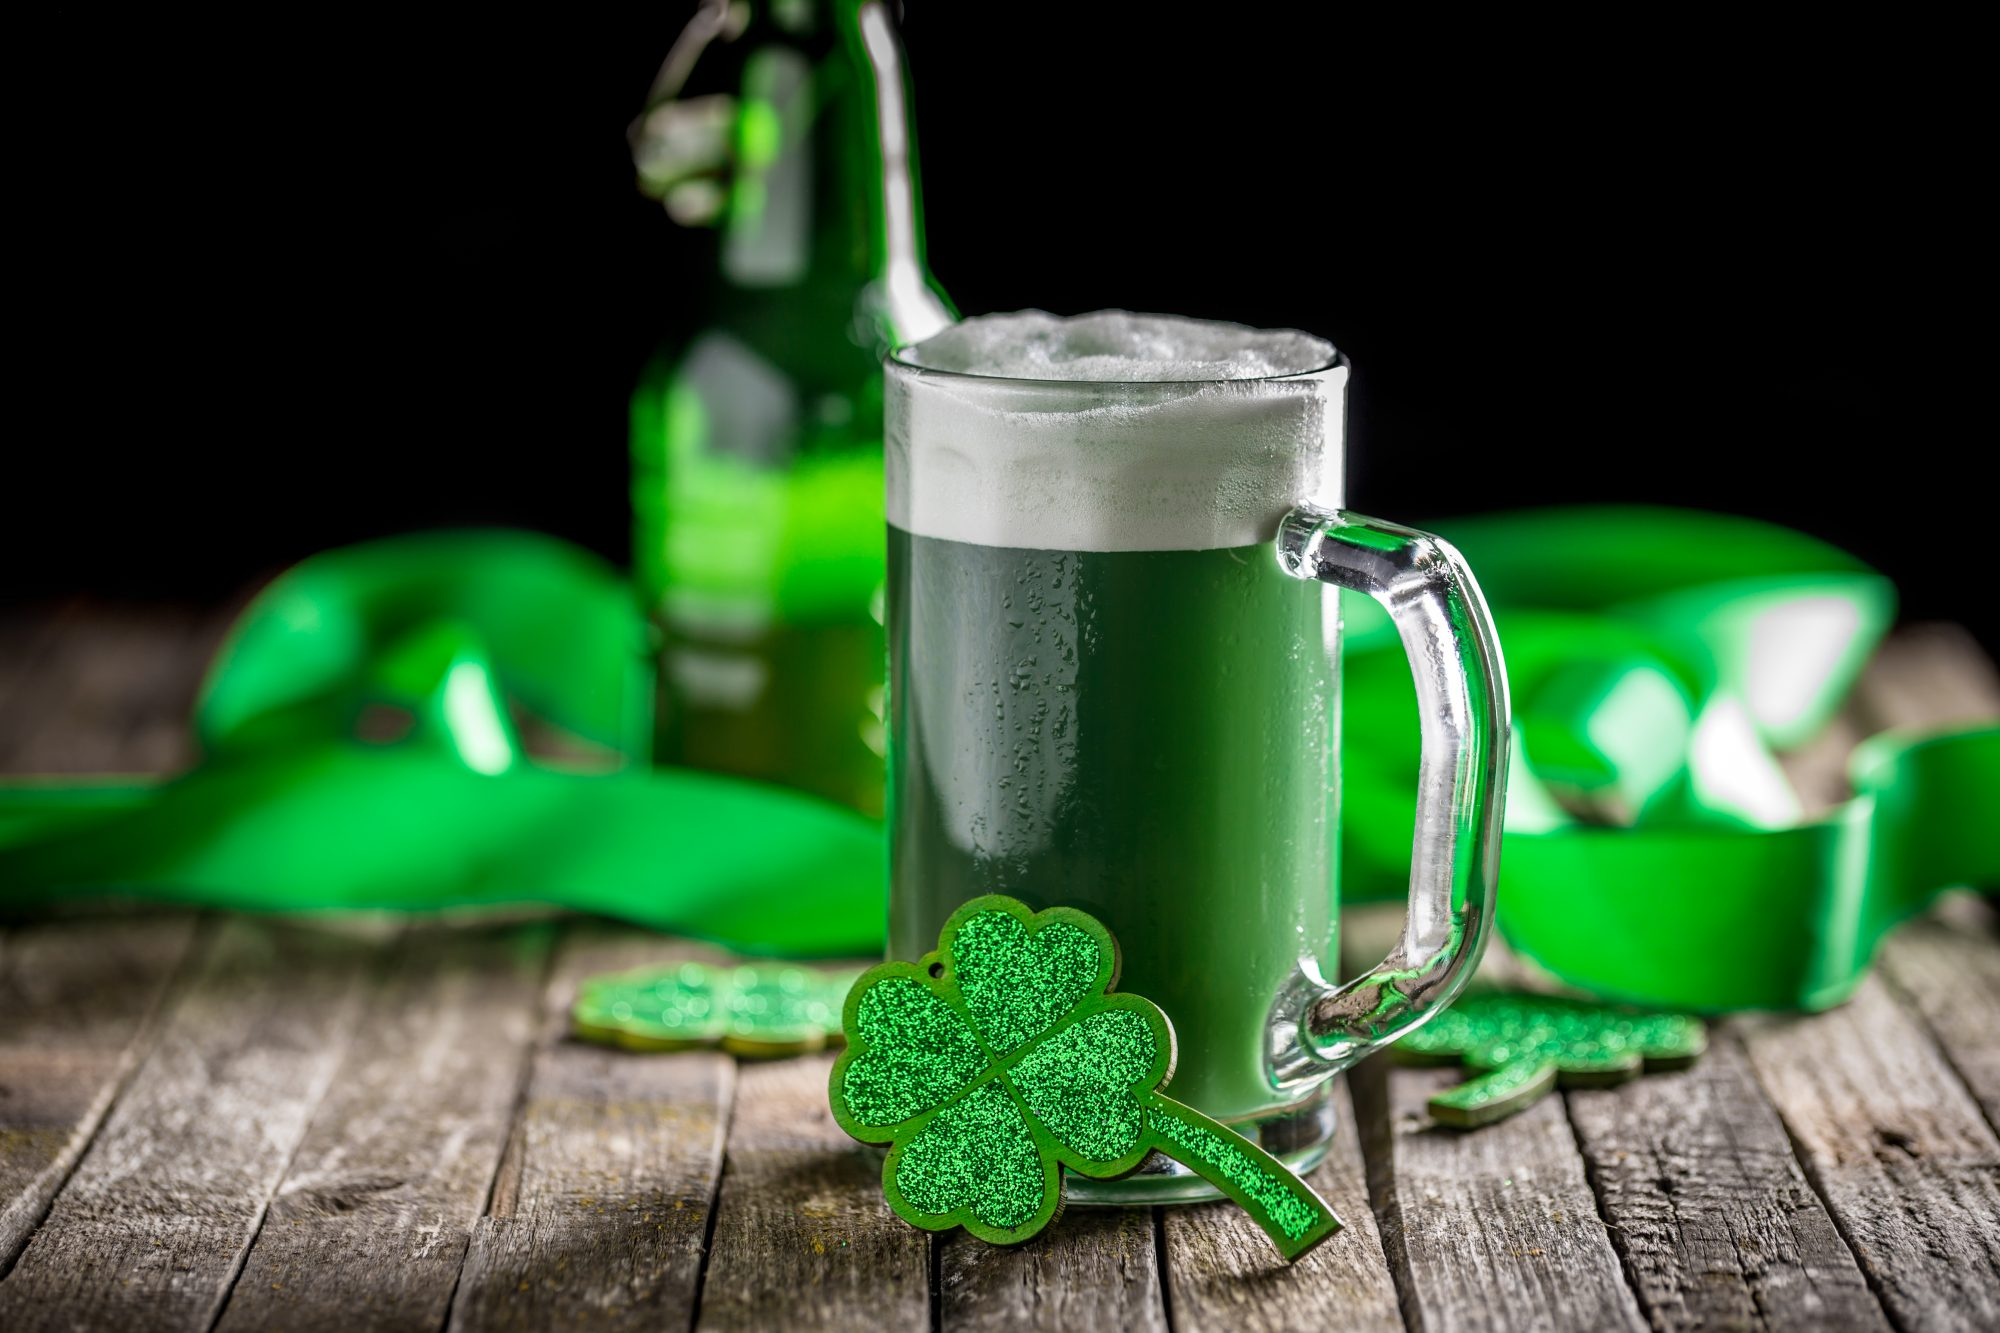 A Bartender's Take on Why Green Beer is the Worst Beer